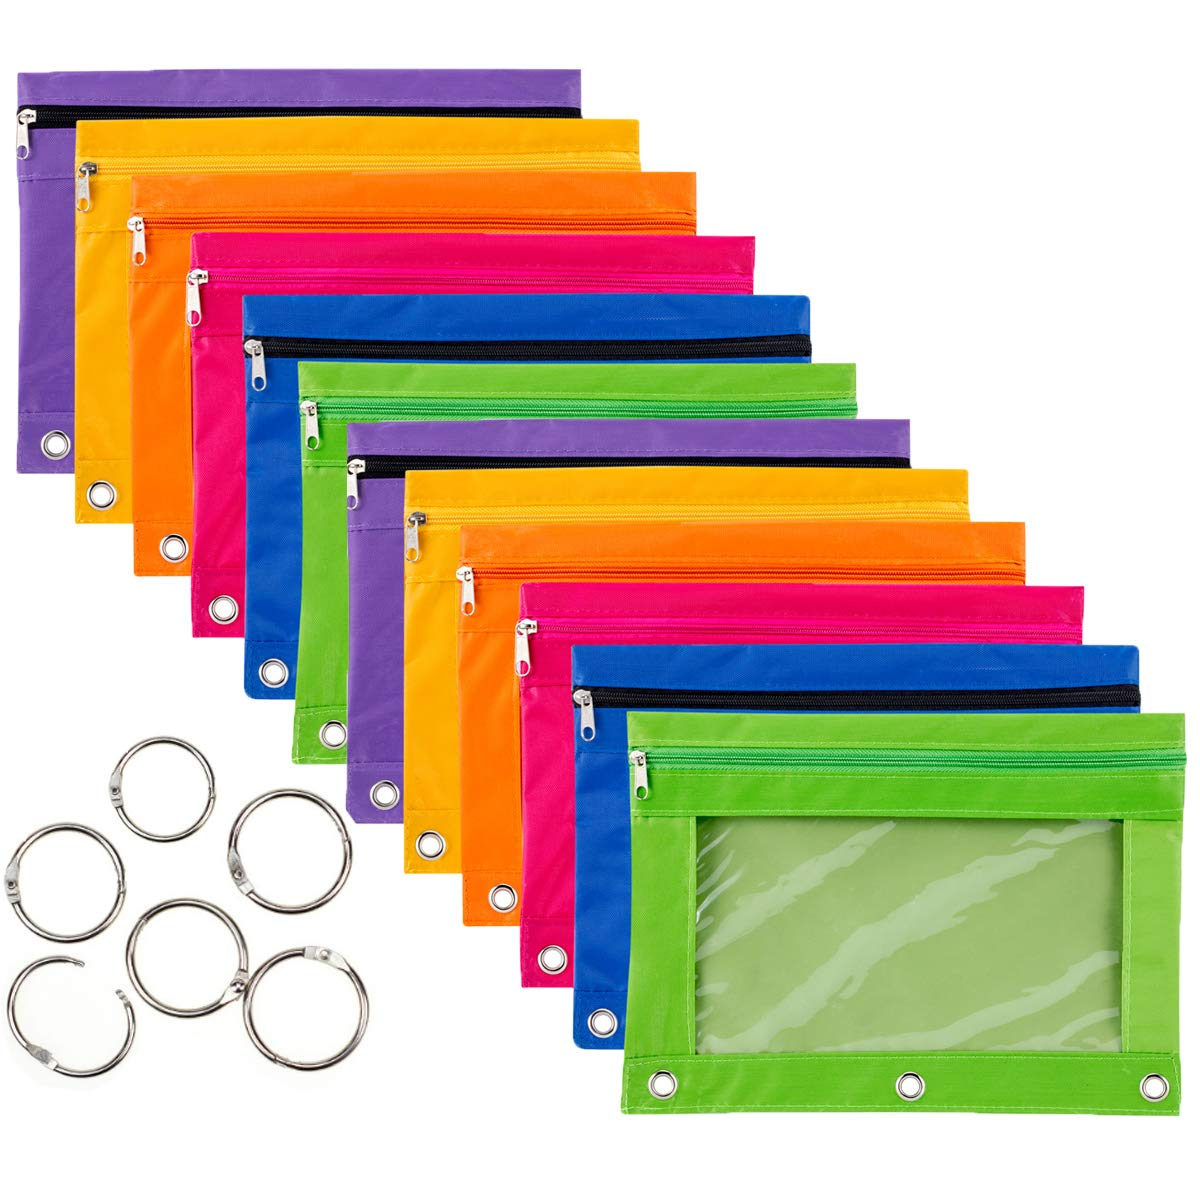 12 Pieces Binder Pencil Pouch with Zipper Pulls 3-Ring with Clear Window Pencil Case with Binder Rings